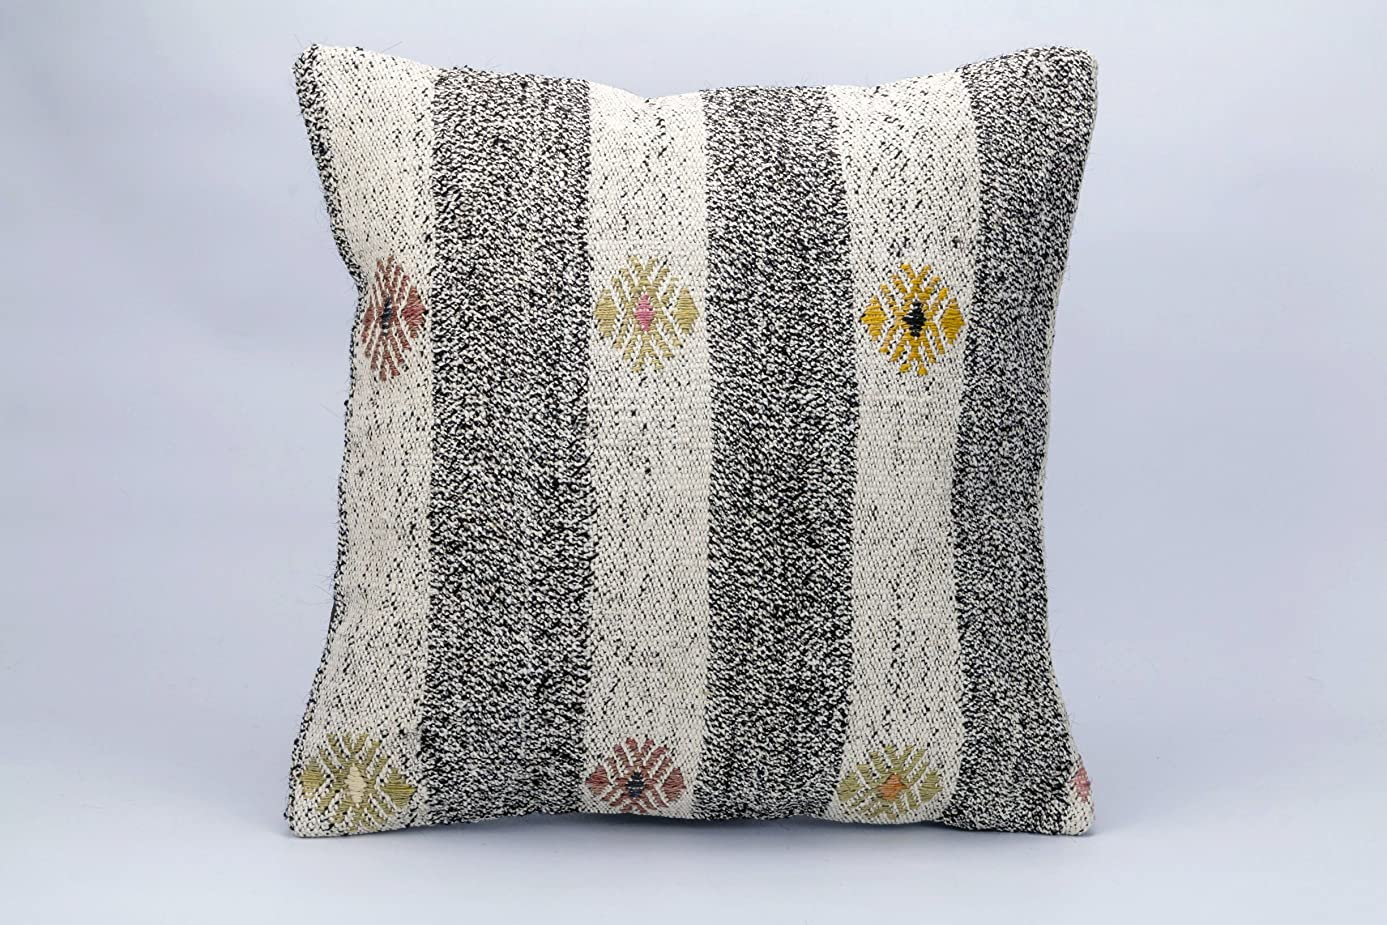 Decorative Pillows - kilim pillows - throw pillow covers - cushion covers for home or office